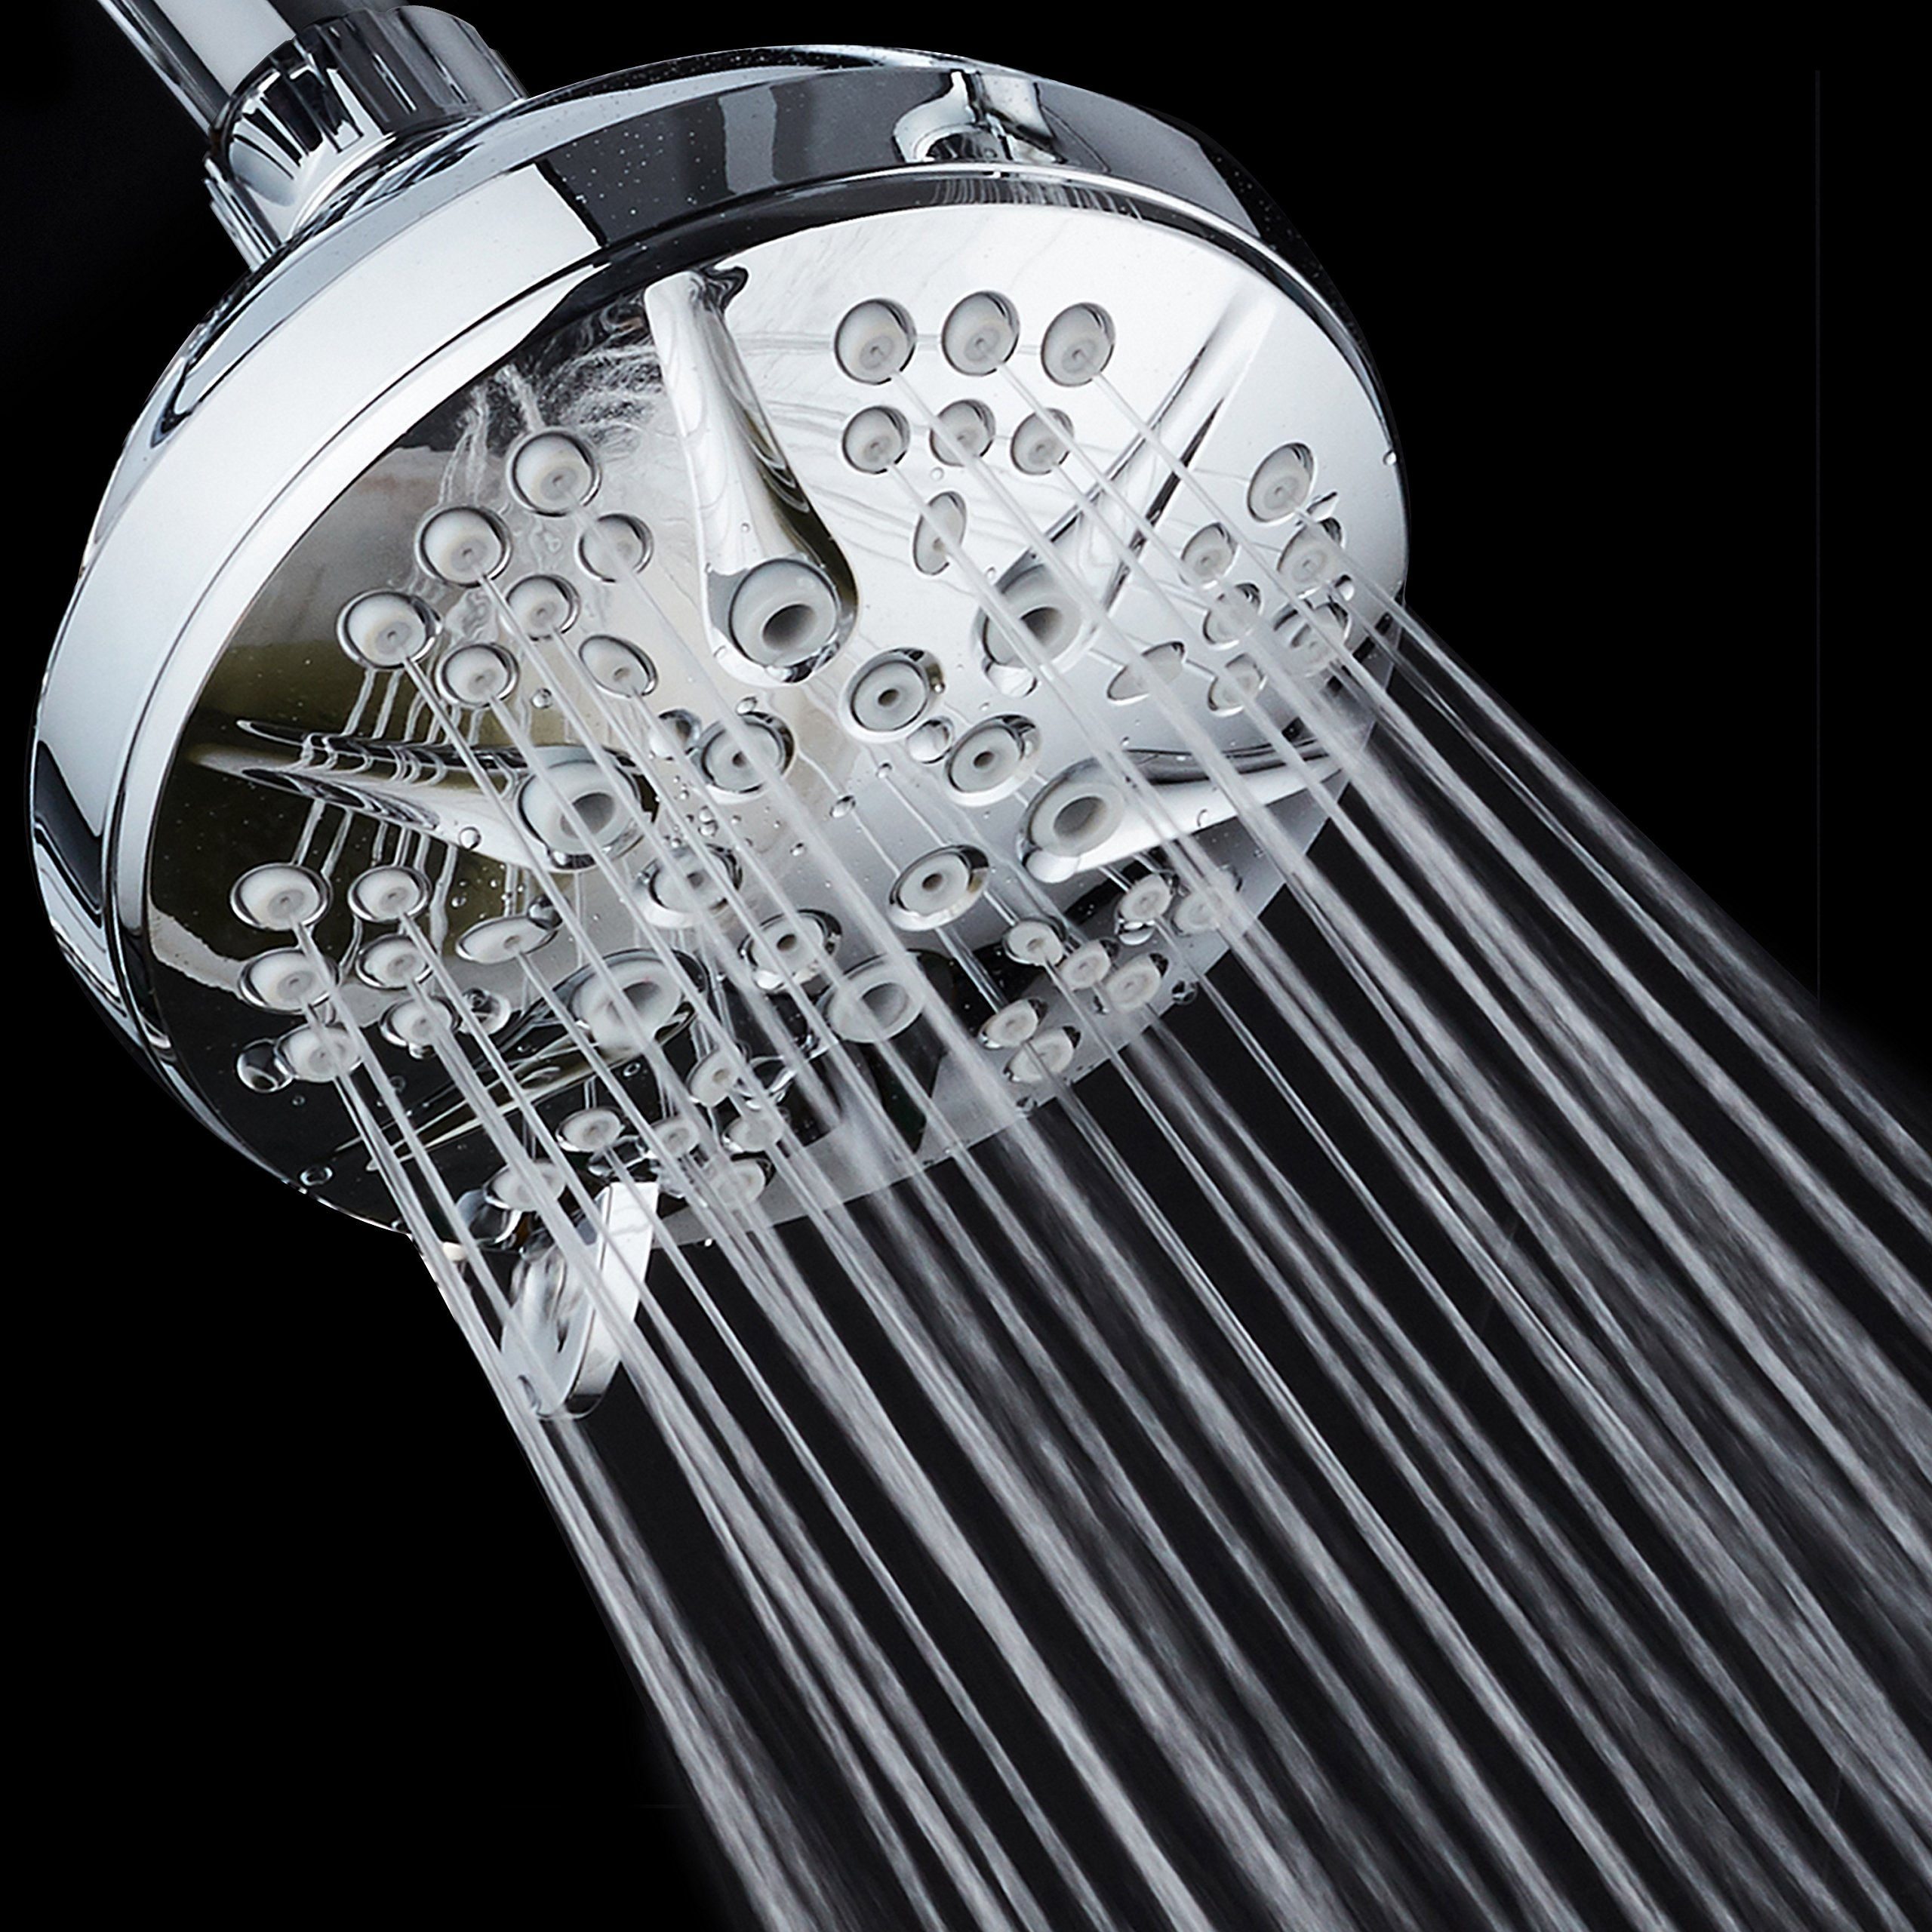 NOTILUS Giant High-Pressure 6-setting 4.3'' Face Modern Luxury Spa Shower Head - Solid Brass Metal Connection Nut, Angle-Adjustable Ball Joint, Anti-Clog Jets, All-Chrome Finish, by HotelSpa (Image #2)